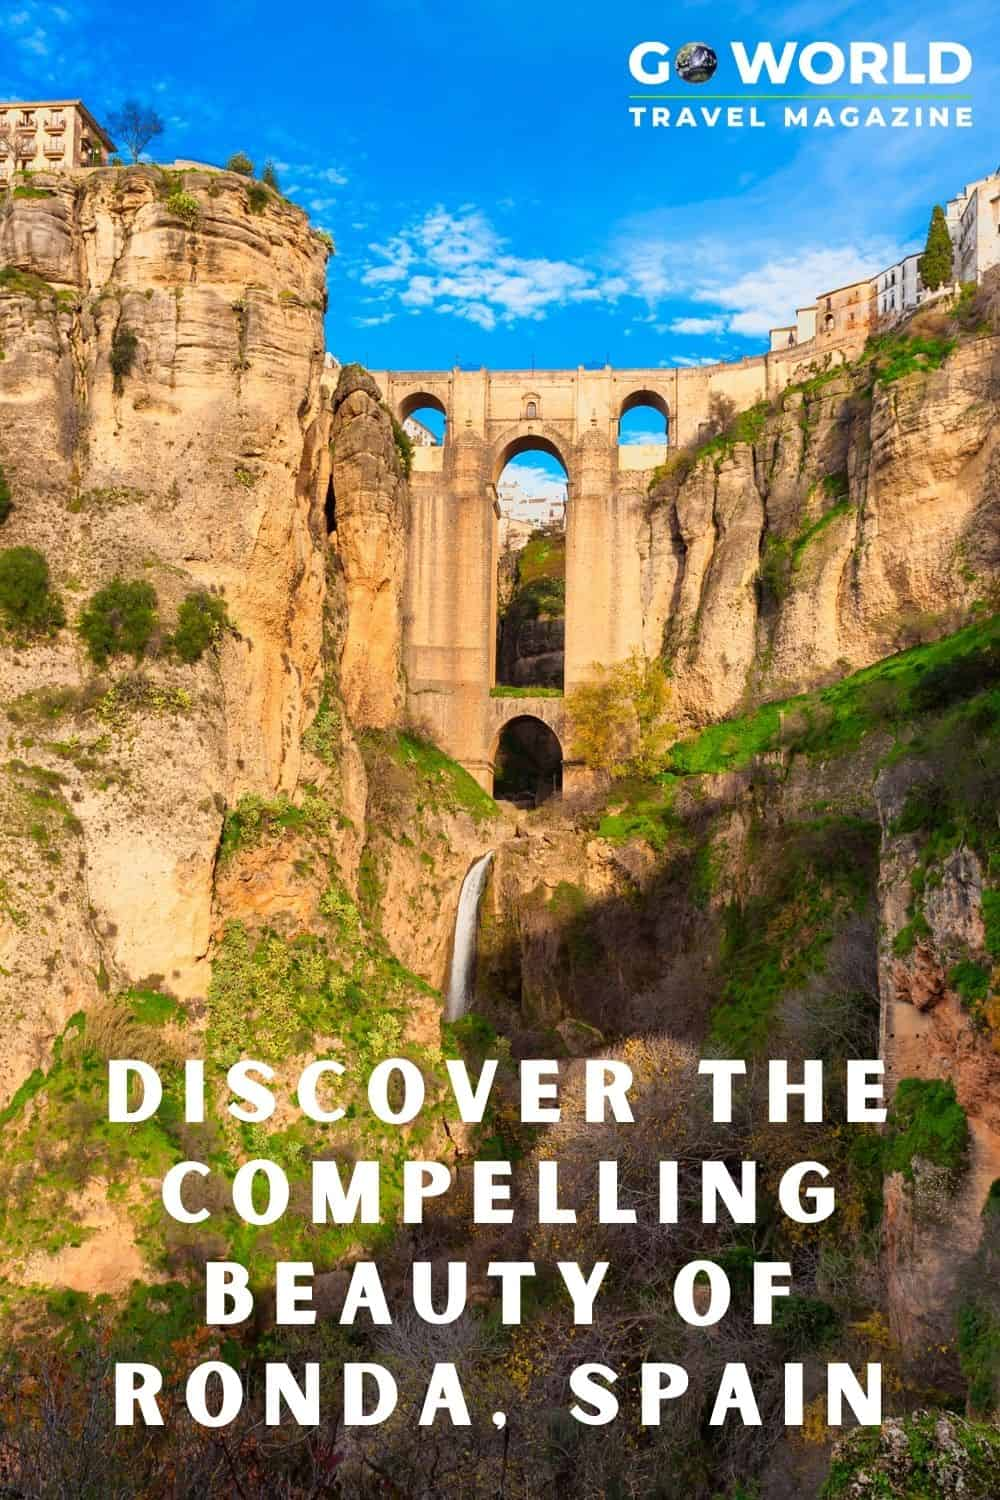 A tale of Ronda, Spain is not complete without bull rings, ghosts and Orson Welles. Ronda will steal your heart and insist on your return. #TravelSpain #RondaSpain